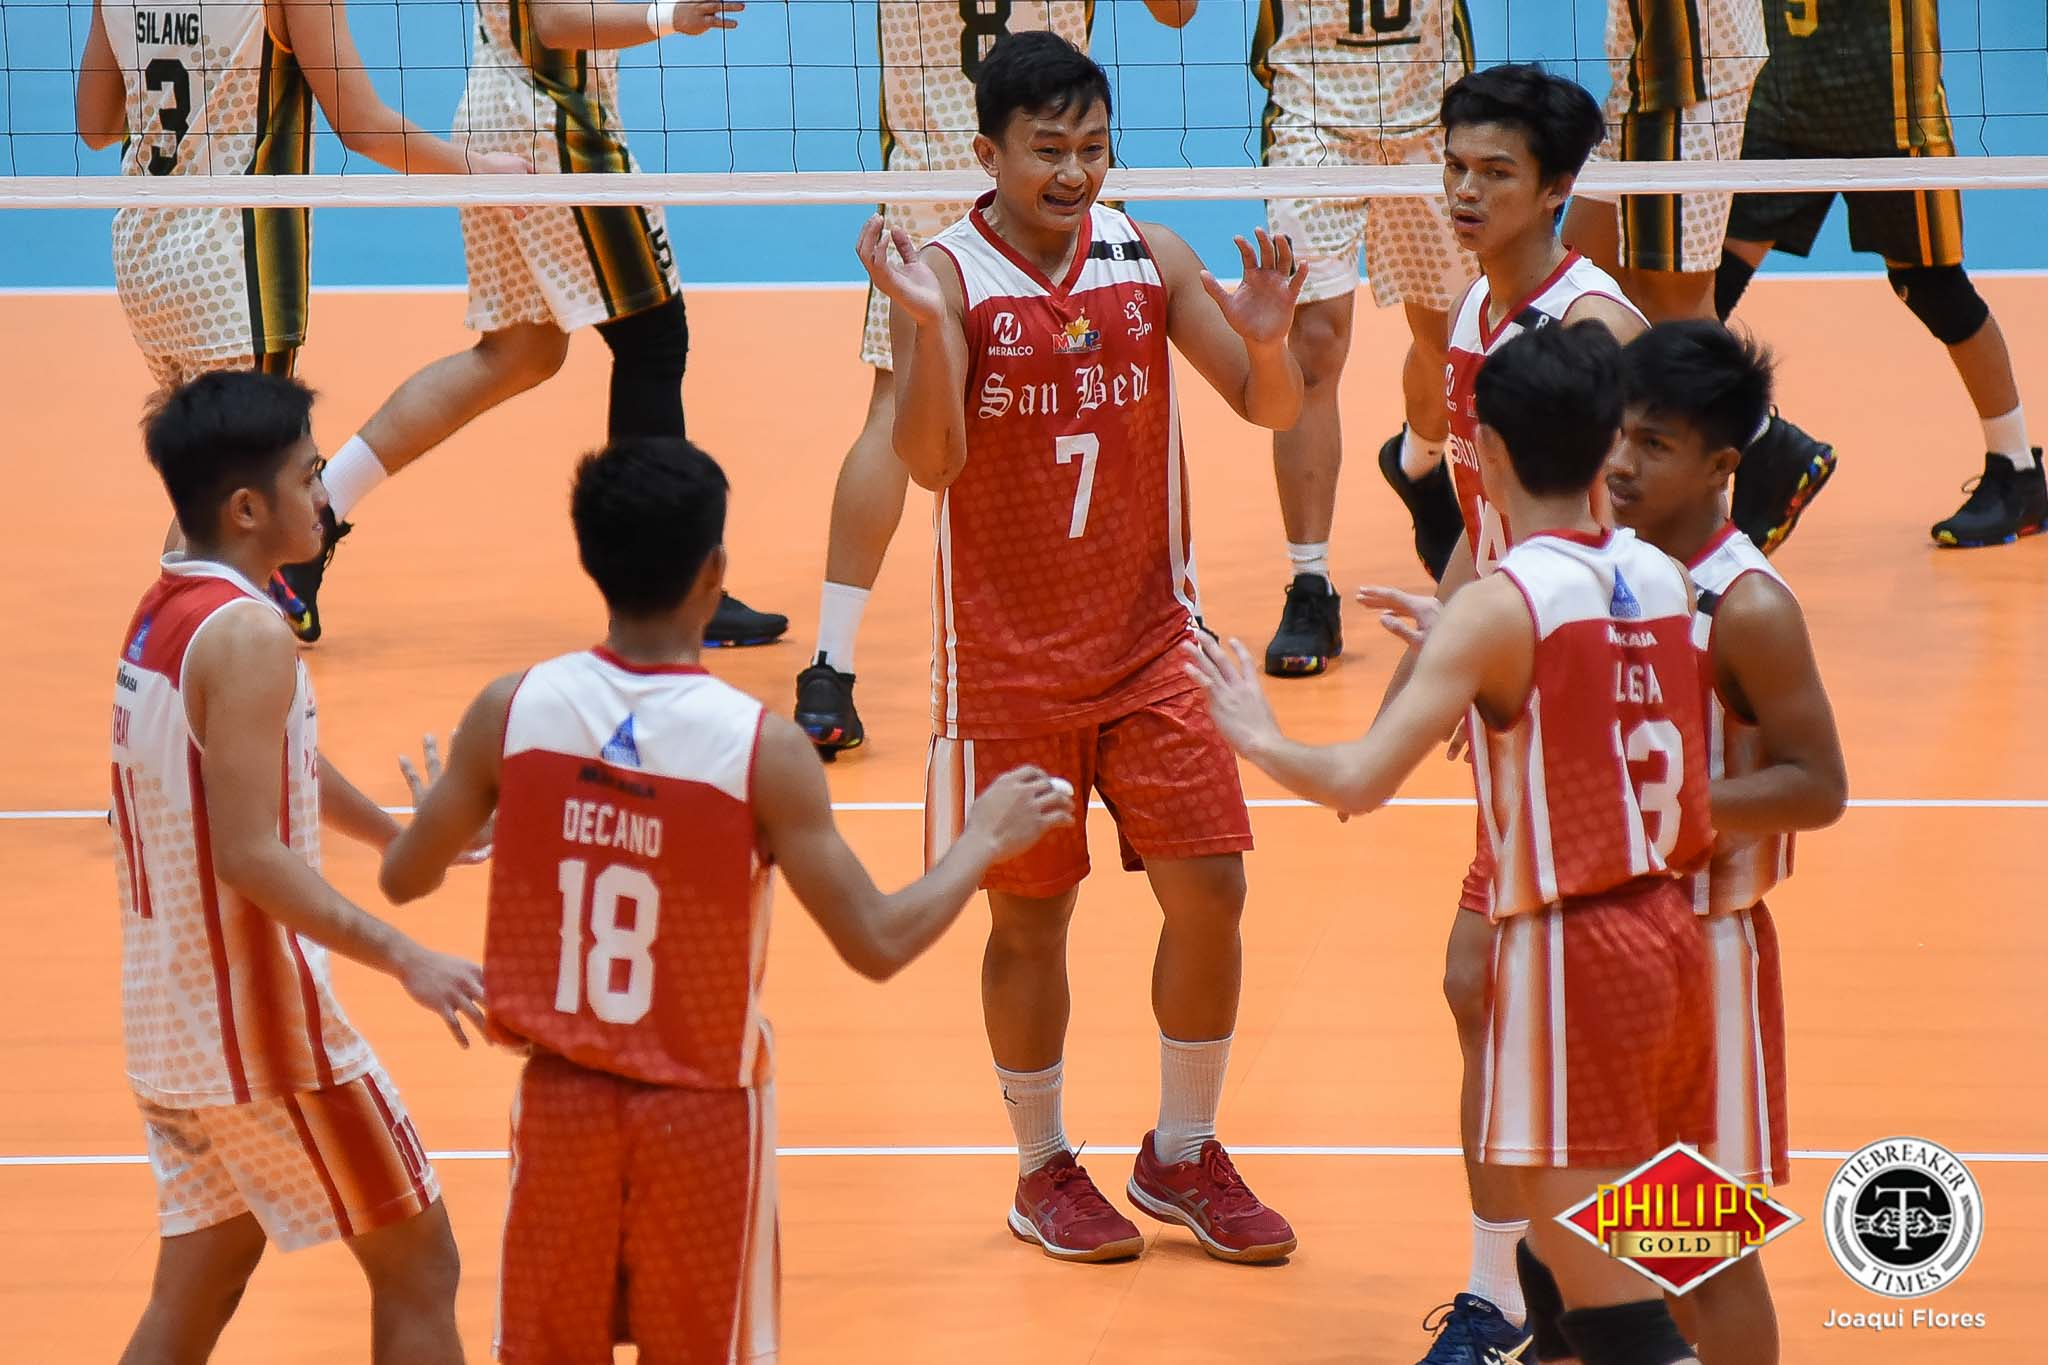 Tiebreaker Times San Beda Red Spikers step up as PNP backs out of Open Conference News SBC Spikers' Turf Volleyball  San Beda Men's Volleyball PNP Patrollers 2019 Spikers Turf Season 2019 Spikers Turf Open Conference